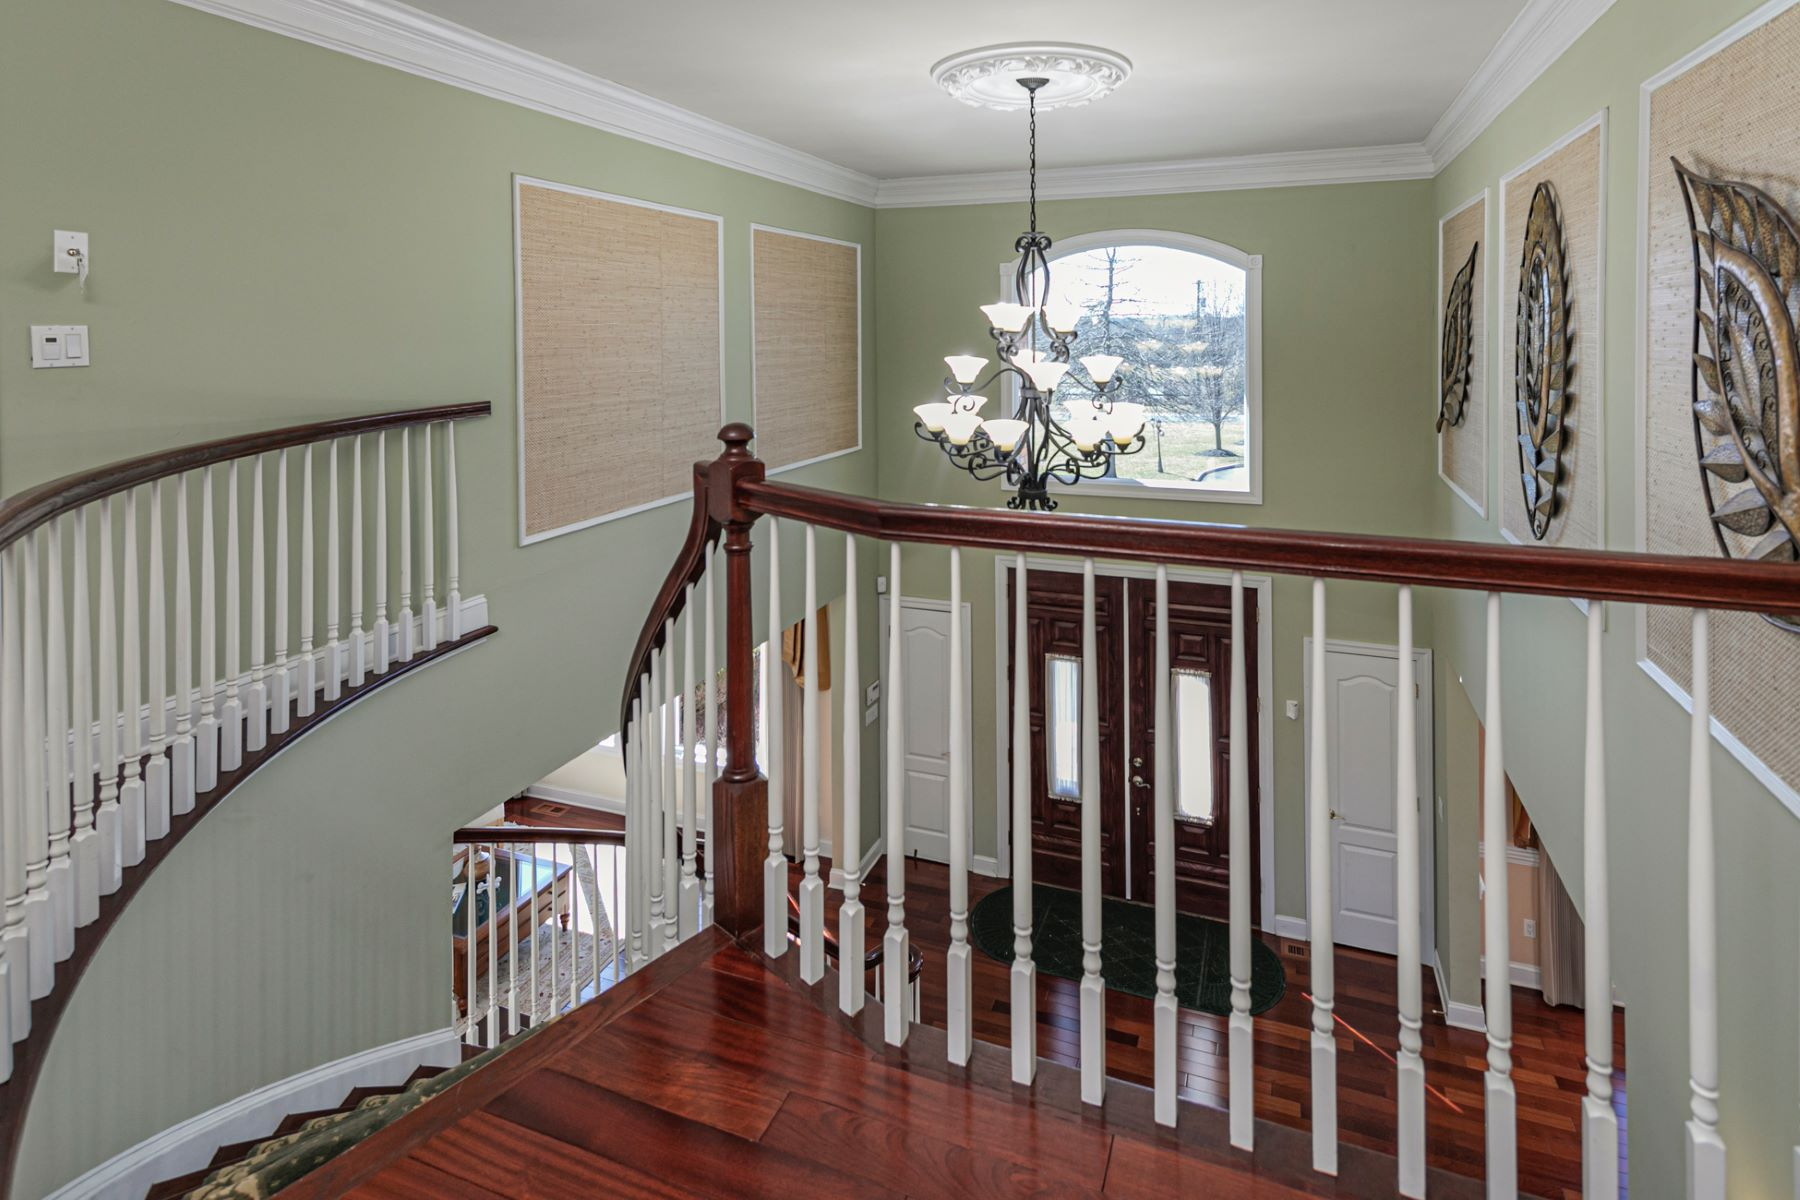 Additional photo for property listing at Impressive Home Accommodates Multi-Generational Living With Ease 296 Harlingen Road, Belle Mead, New Jersey 08502 United States